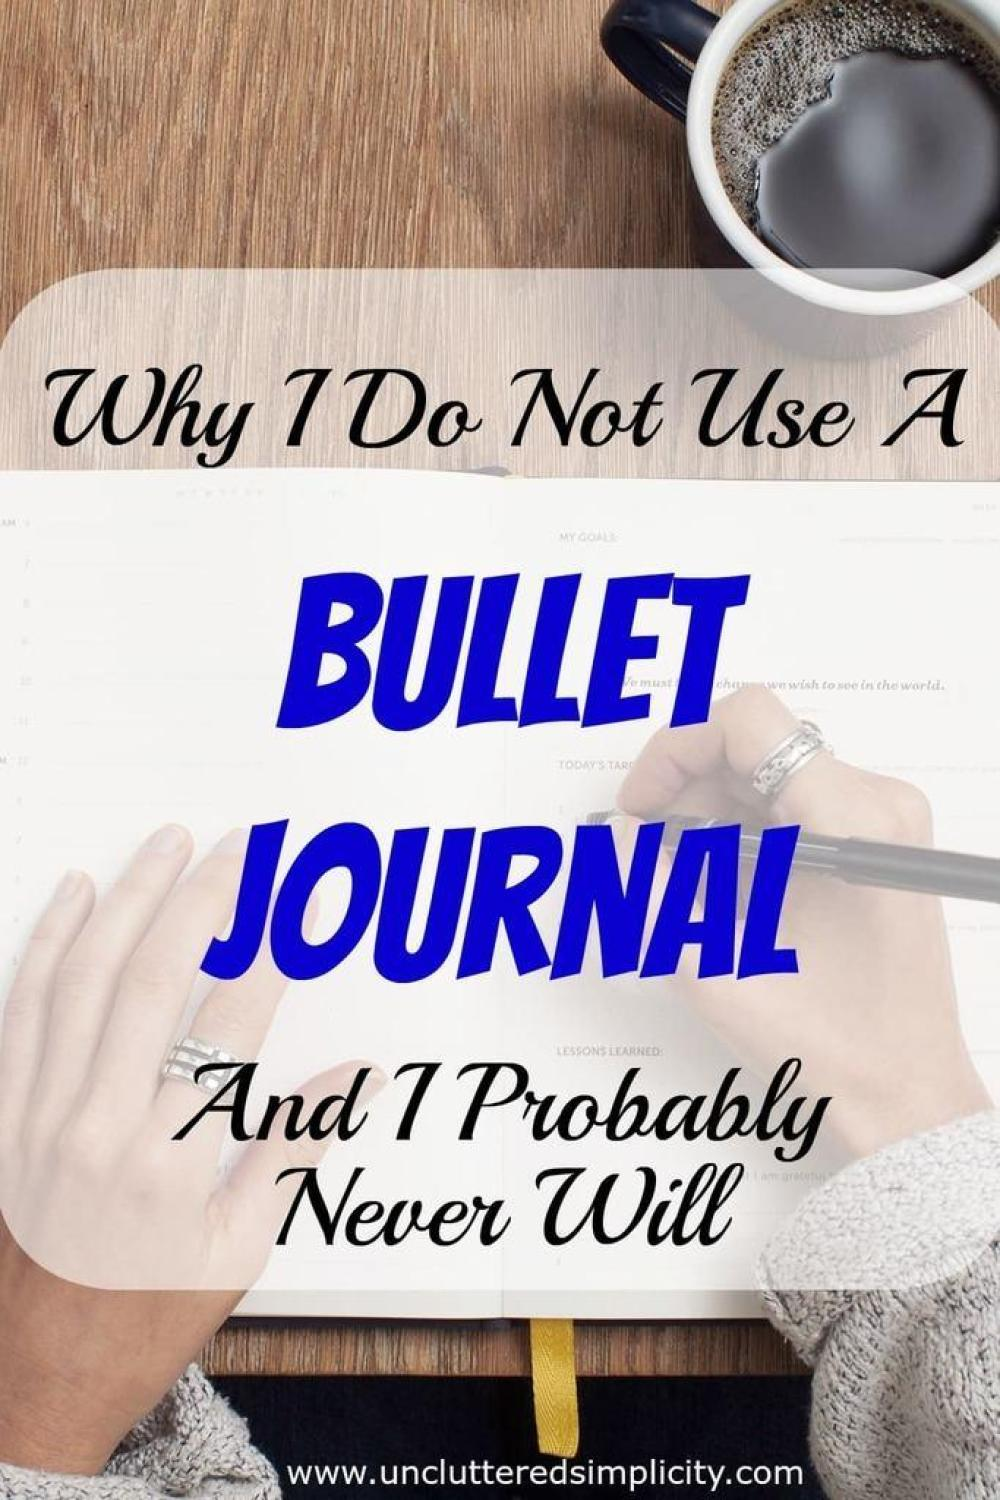 I'm so glad I read this! Now I don't feel so bad about not wanting to use a bullet journal!